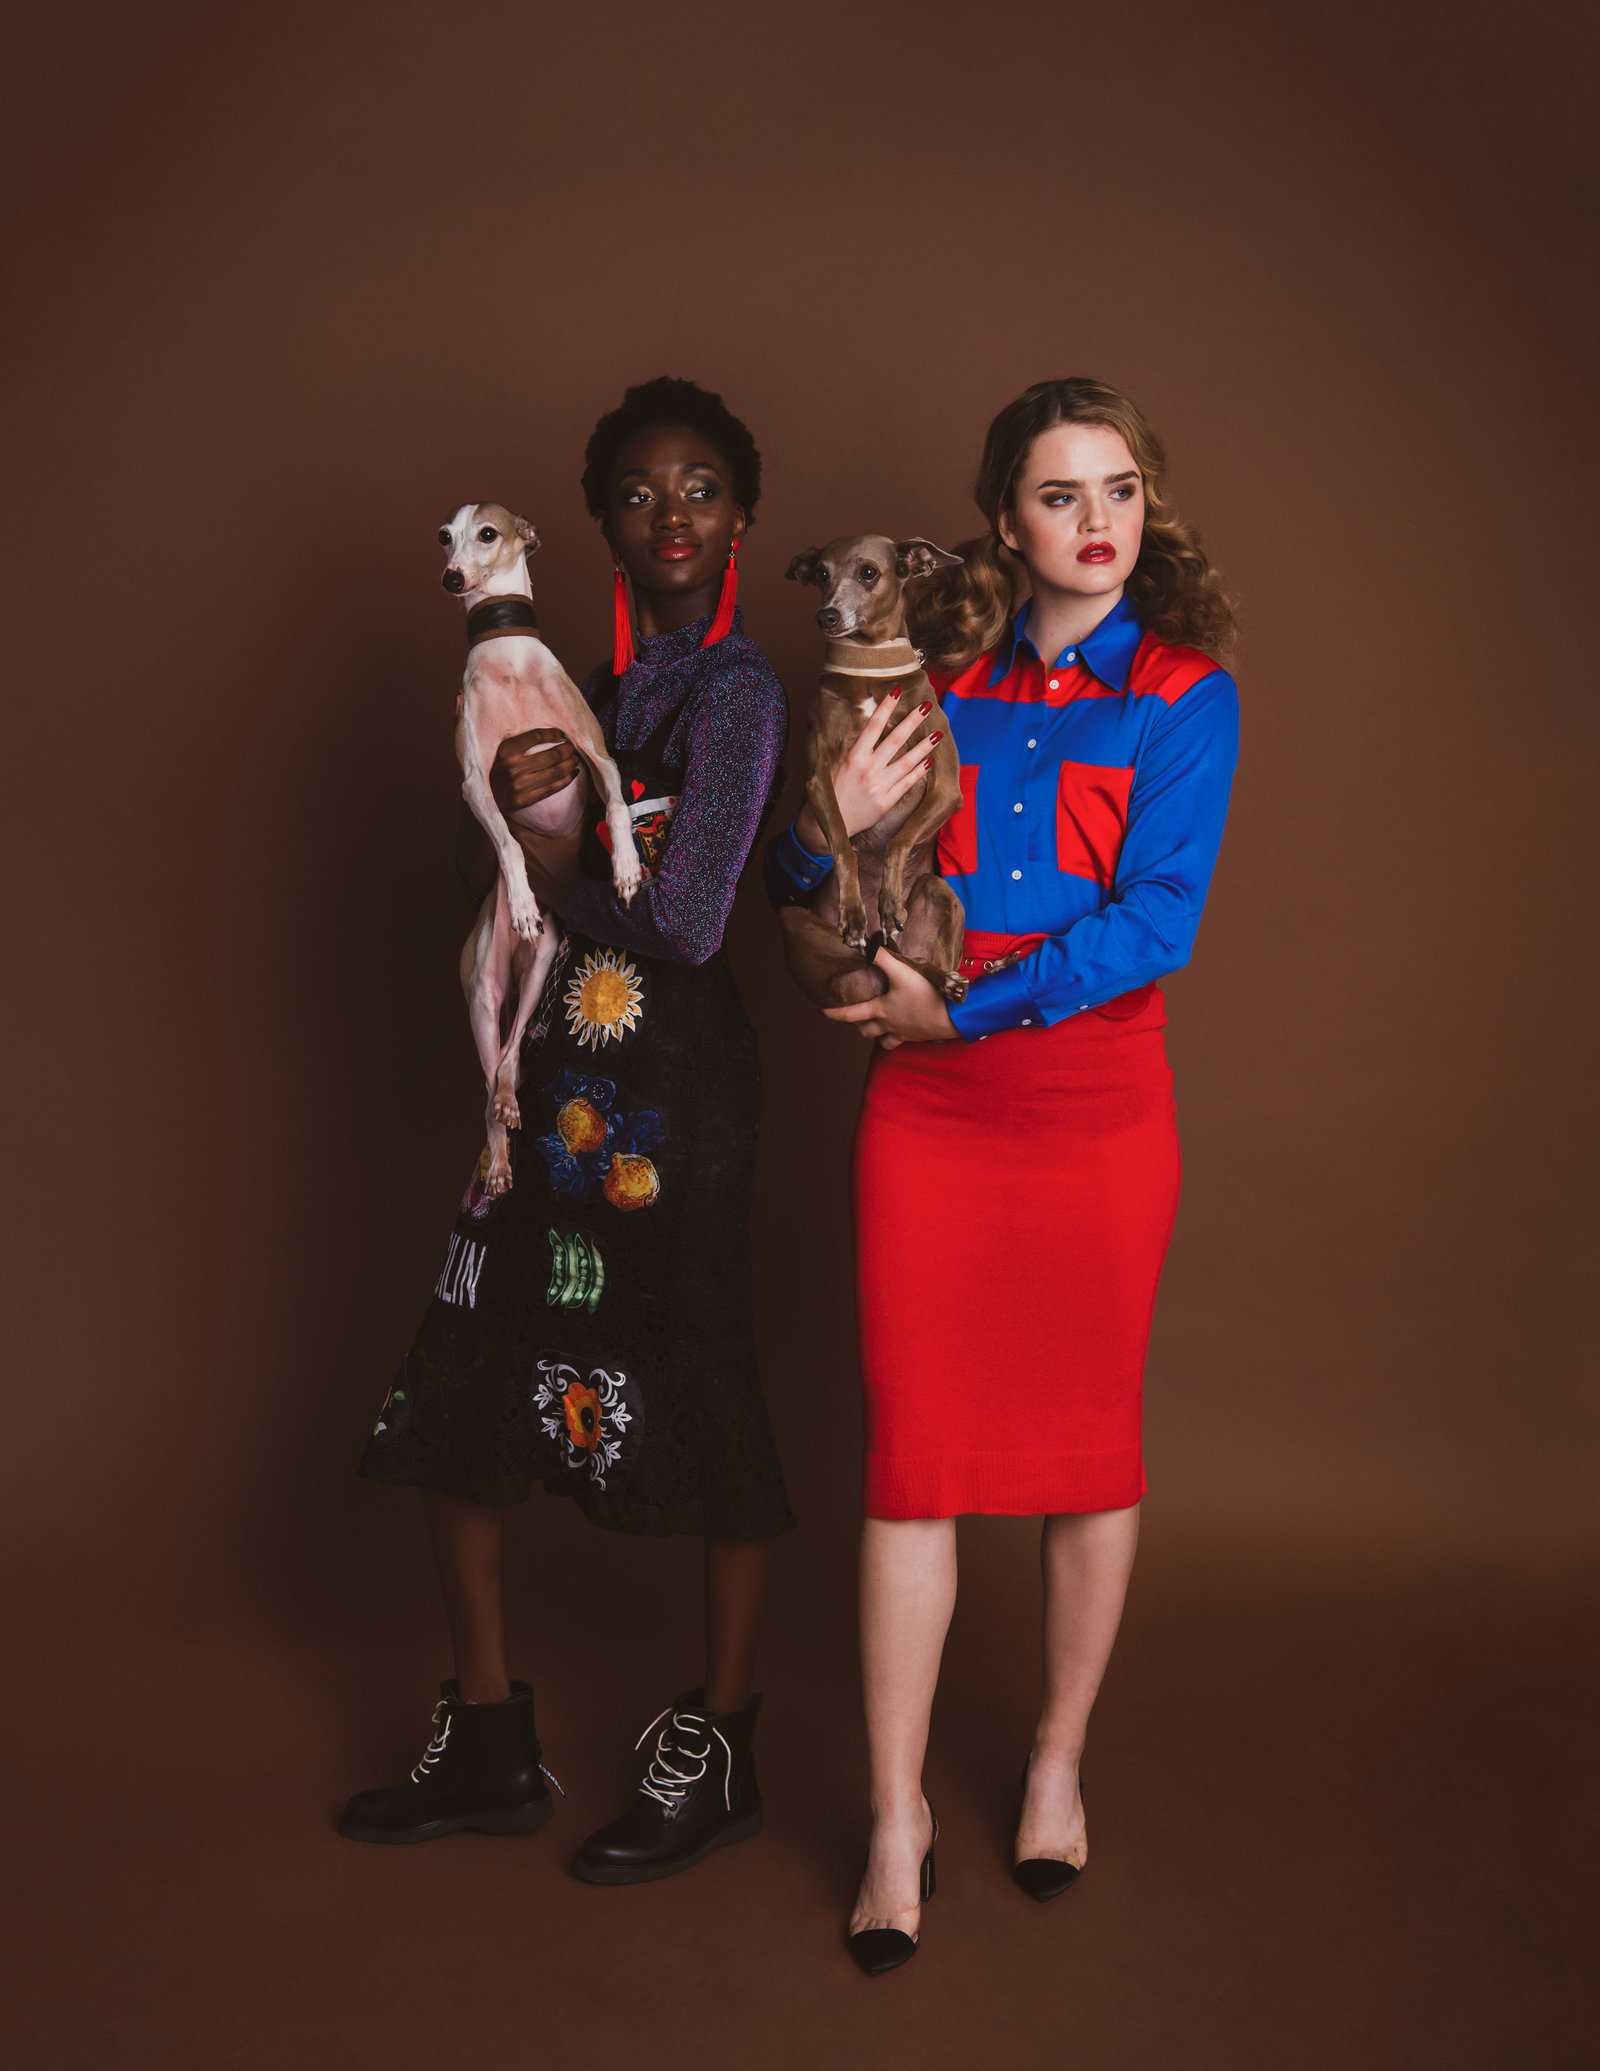 Dog-Fashion-Editorial-by-Brittany-Gawley-Photography-Westboro-Studio-22